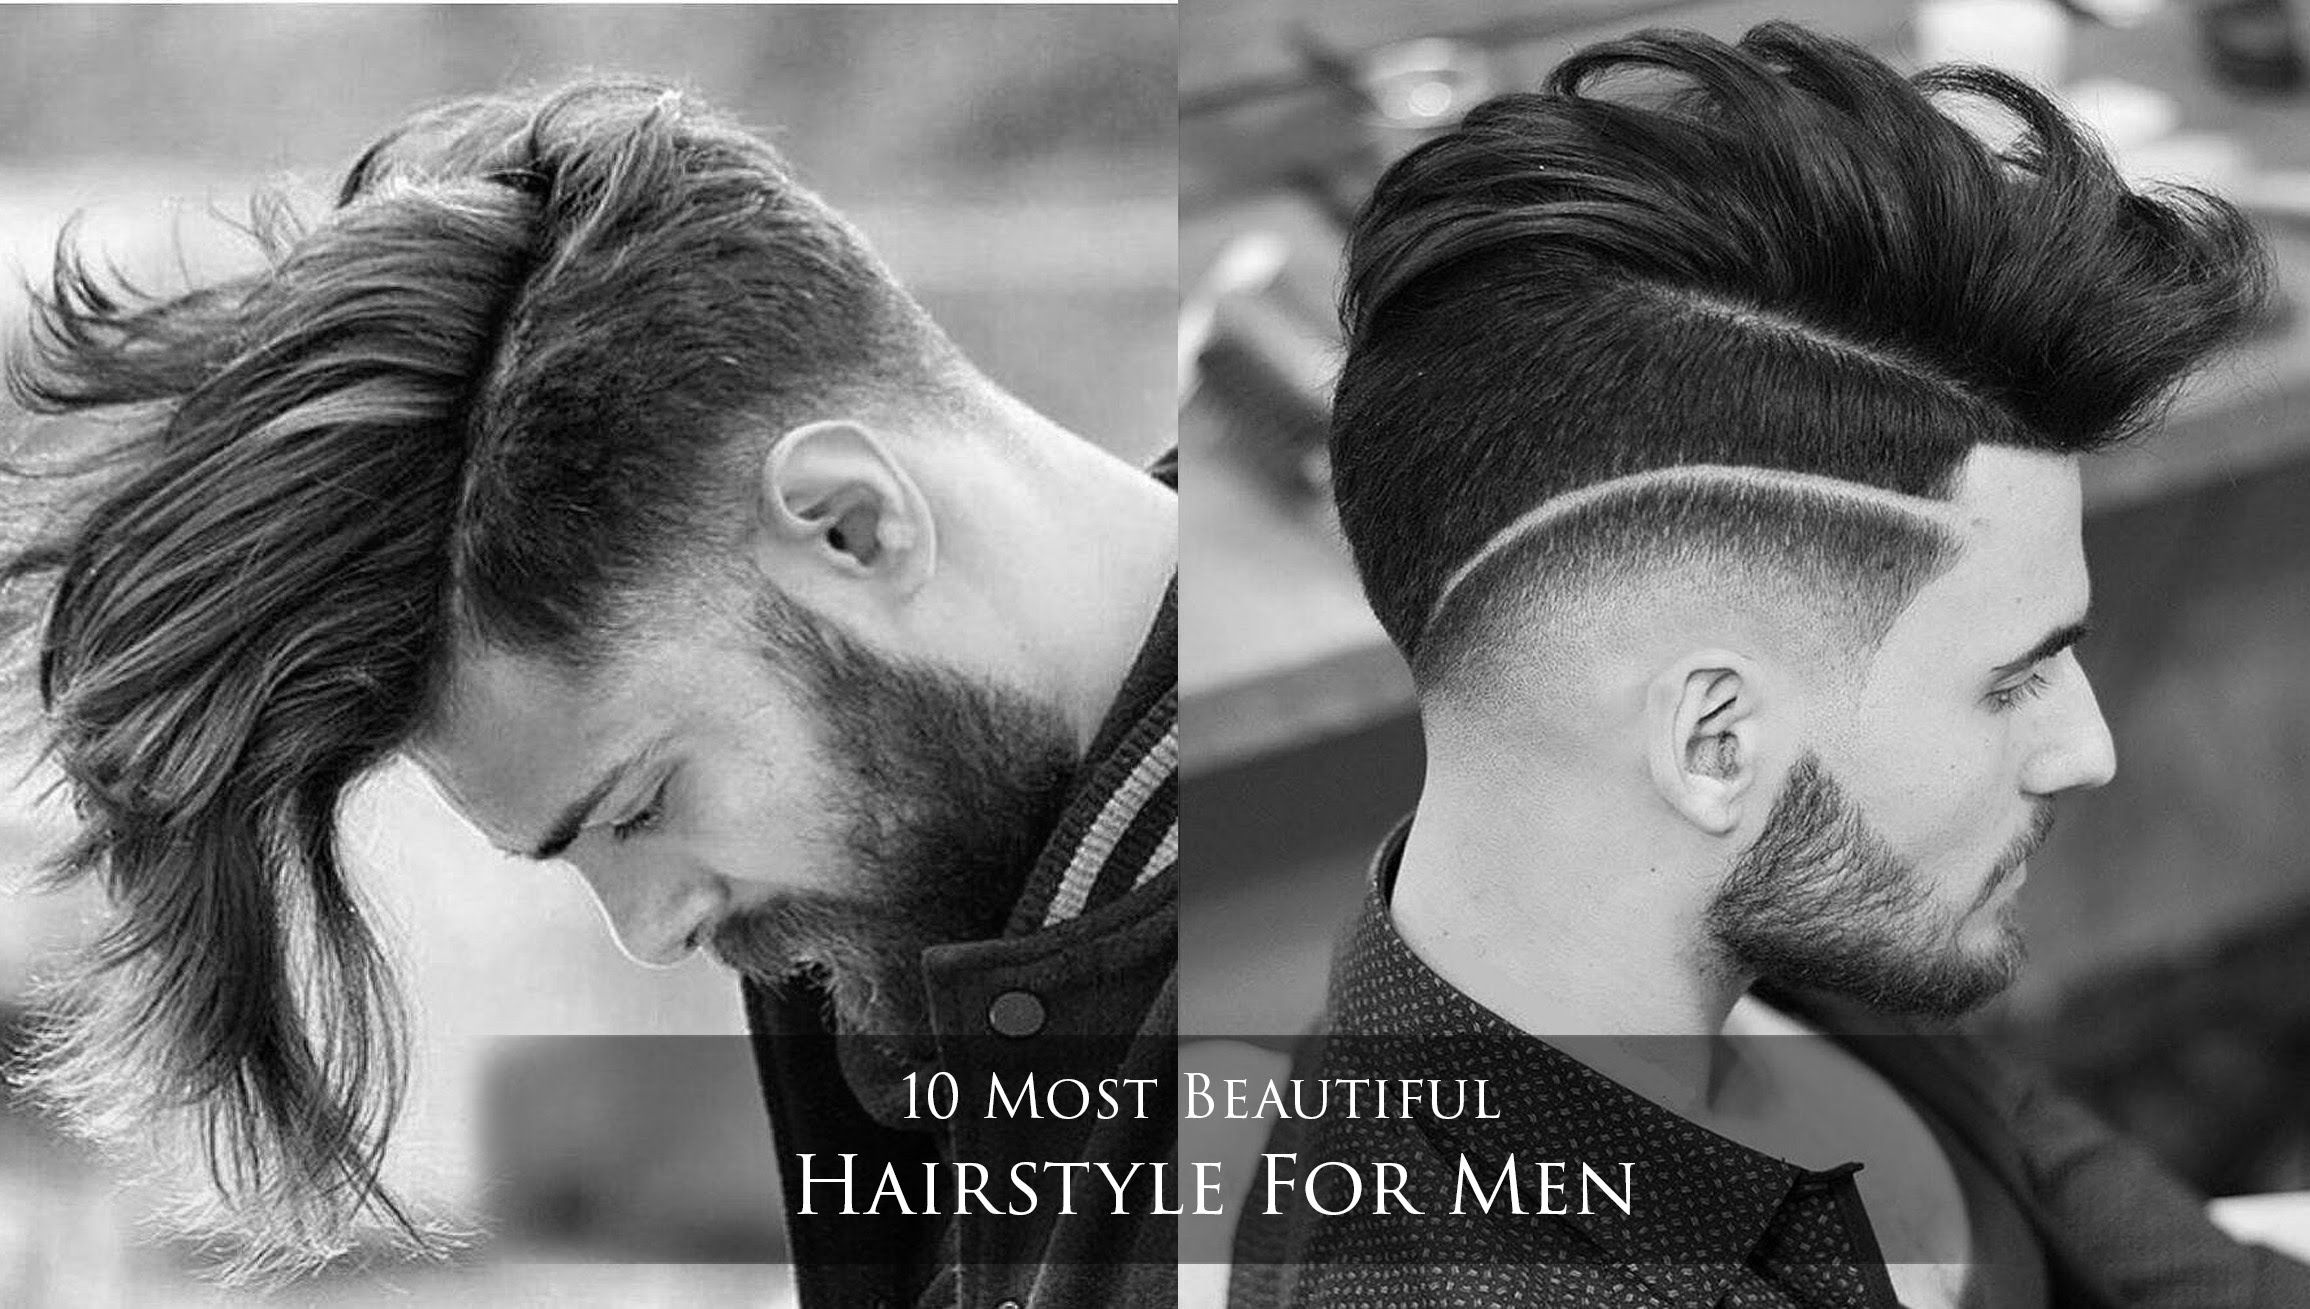 10 Most Beautiful Hairstyle For Men 2016